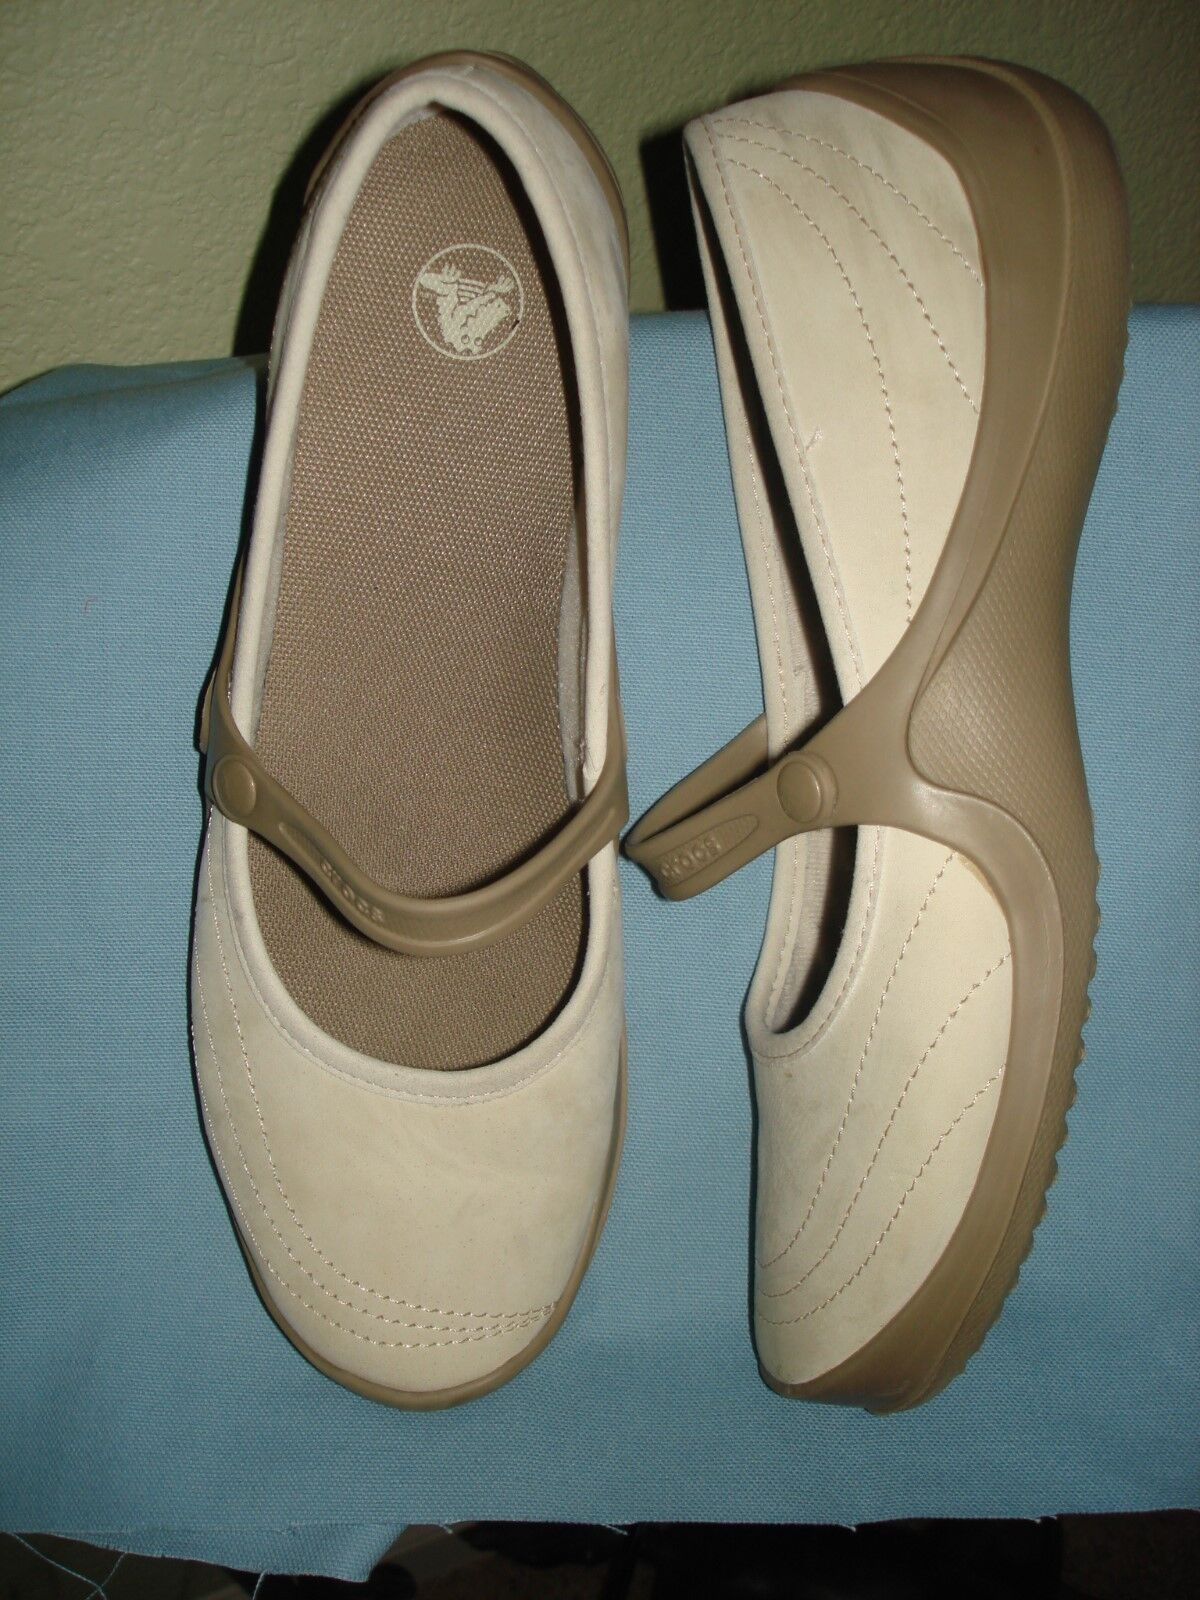 WOMENS CROCS SHOES BEIGE SUEDE FLATS SIZE W11  PRE-OWNED